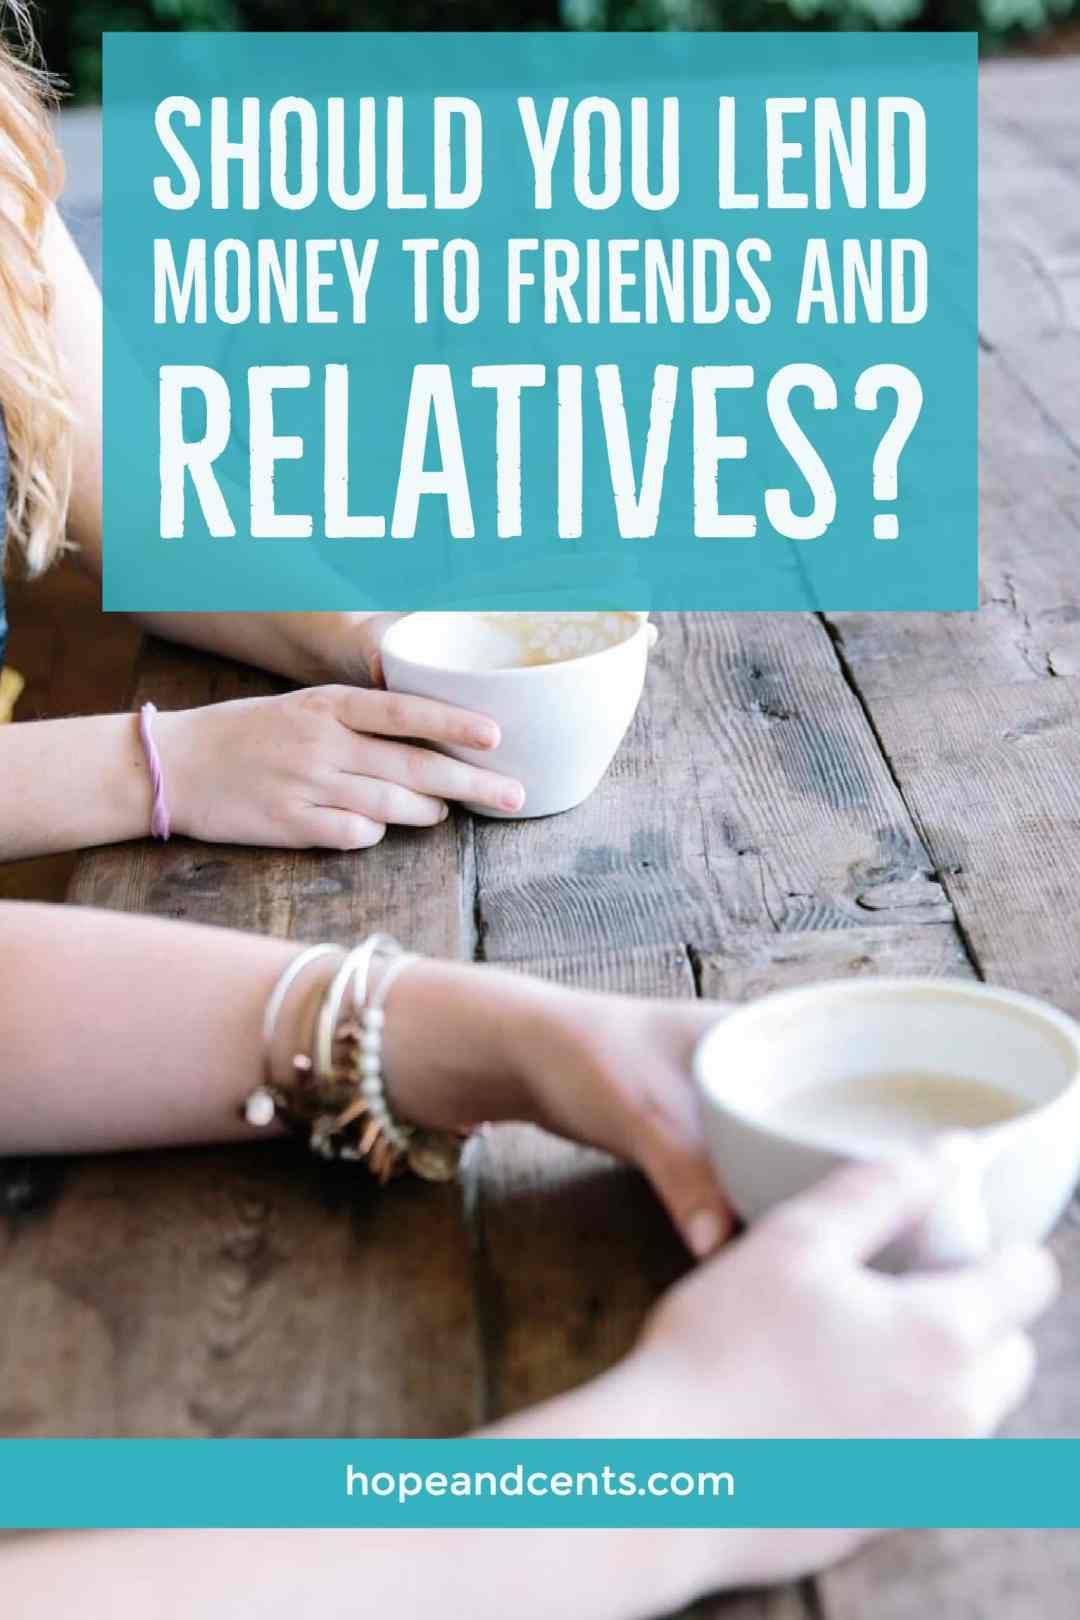 Should You Lend Money To Friends and Relatives?